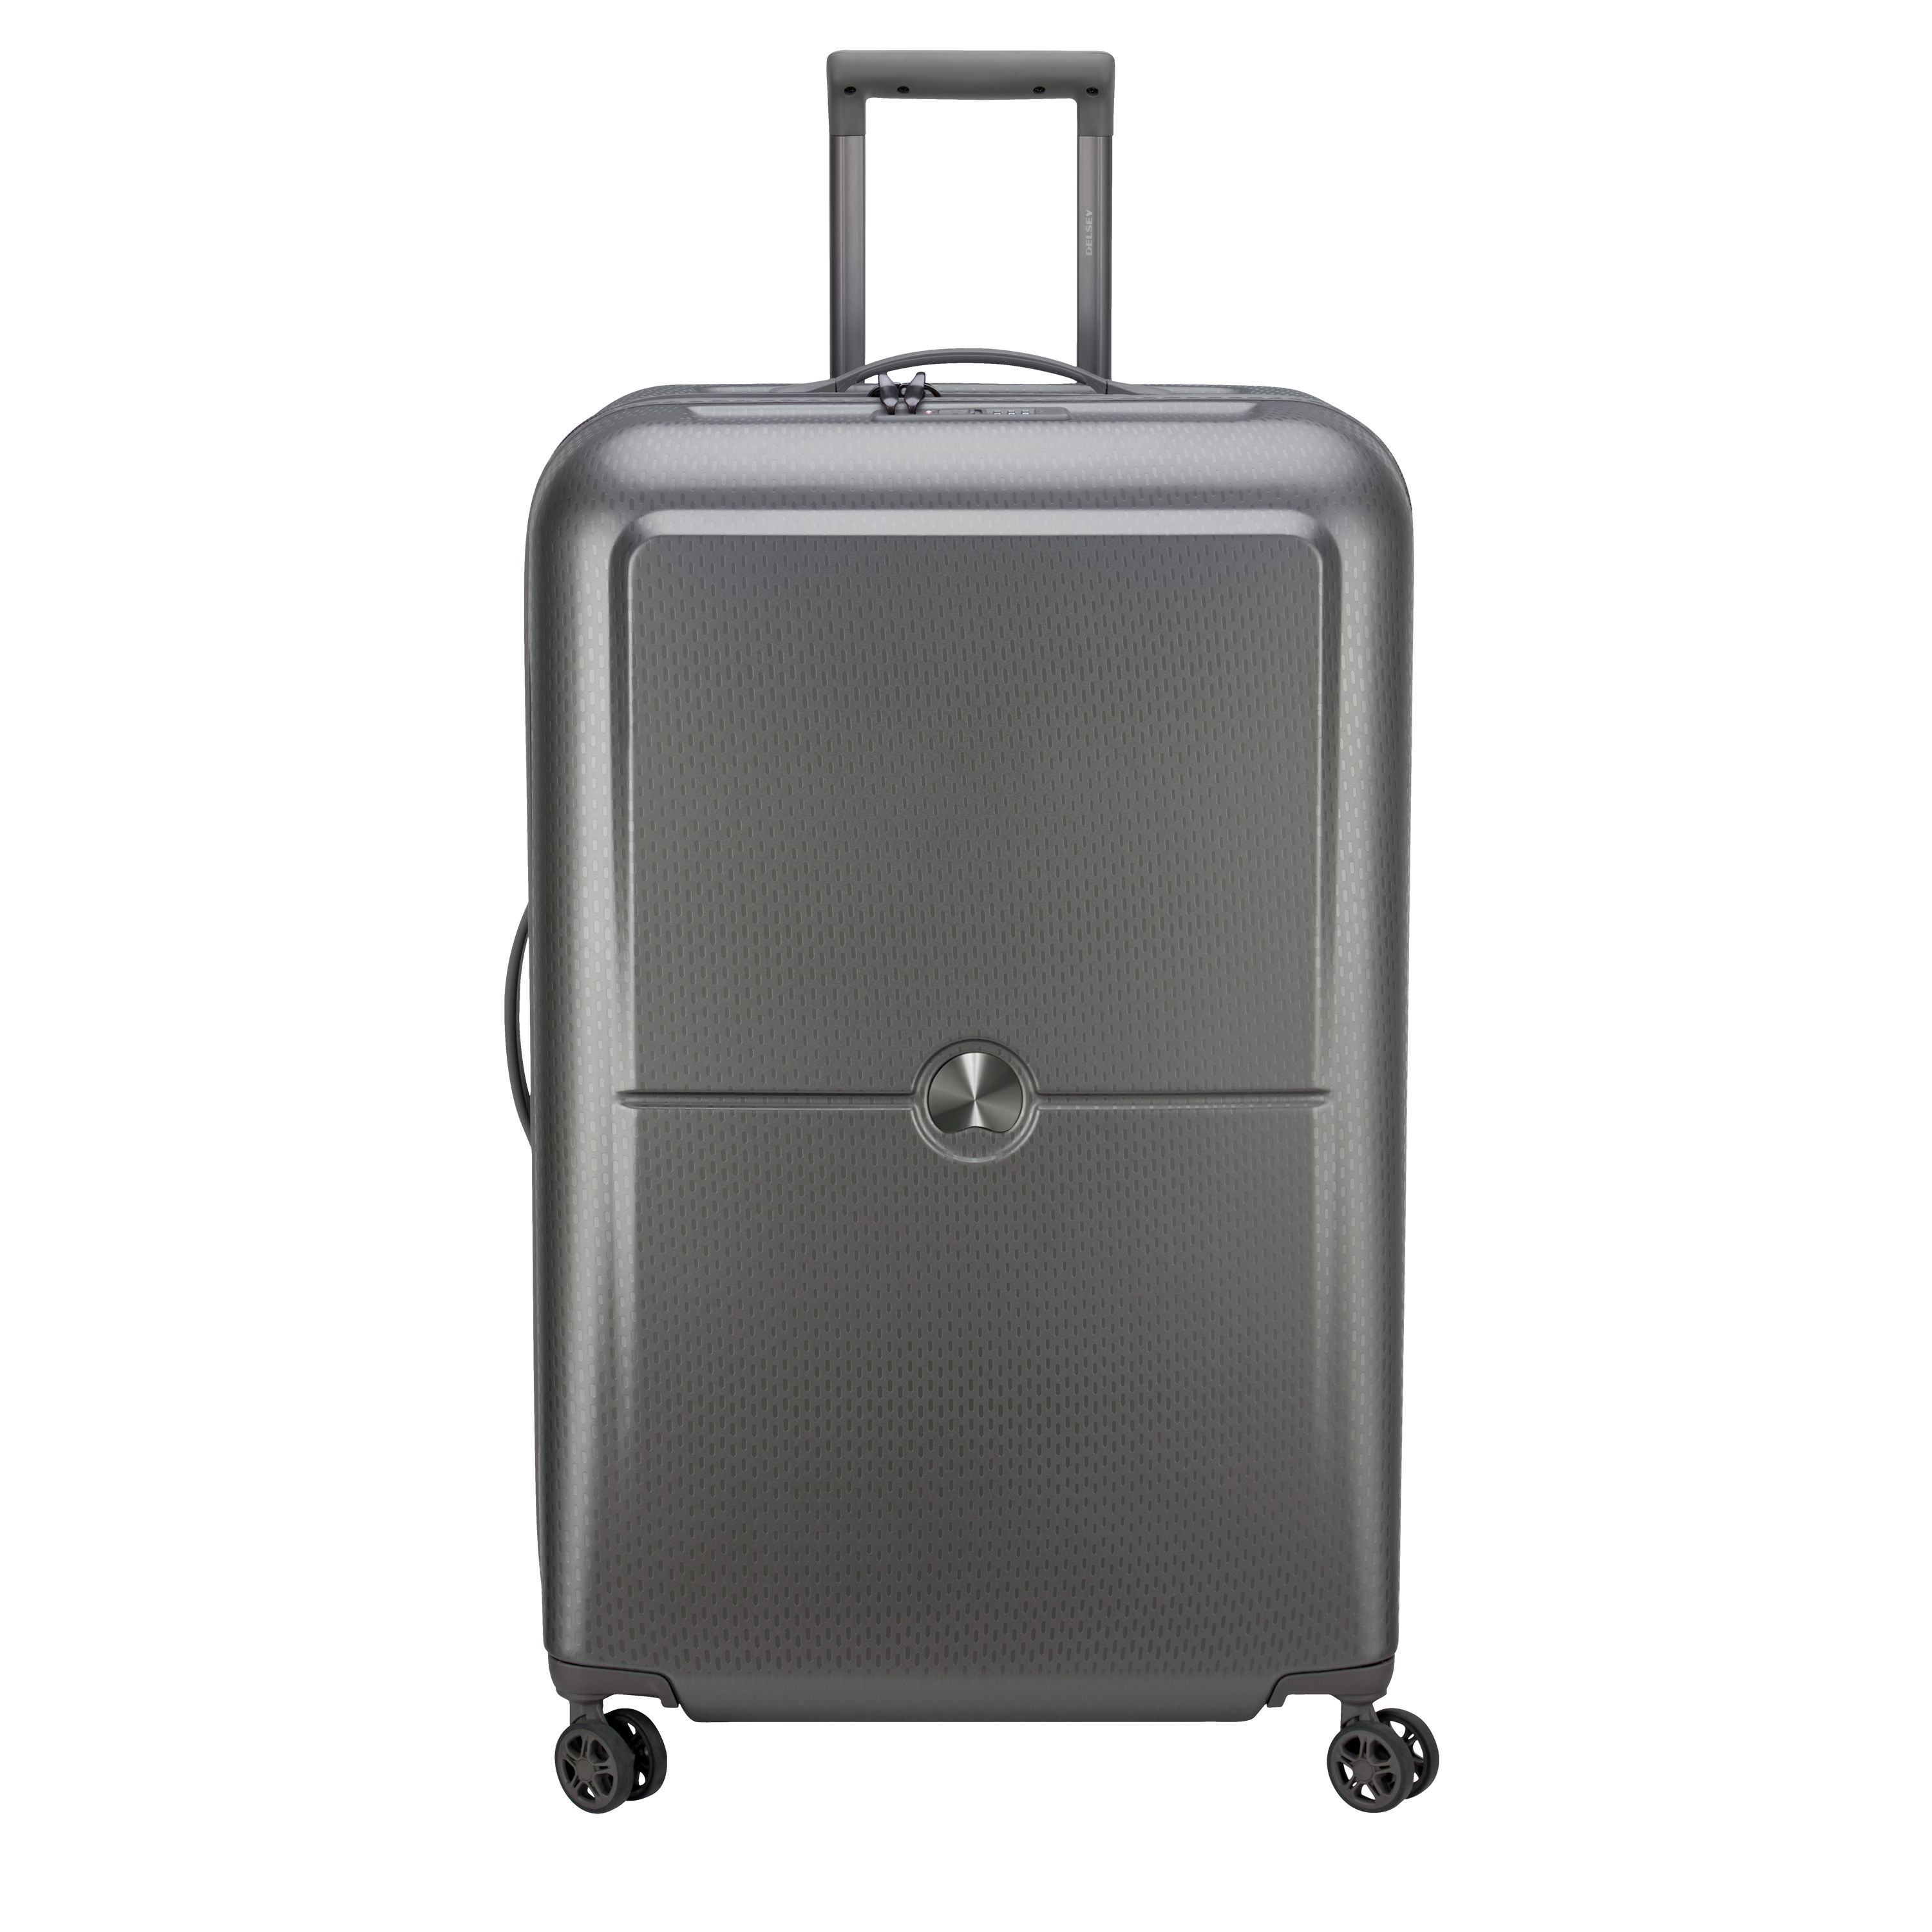 Delsey Turenne Silver 70cm 4 Double Wheels Large Case, Silver